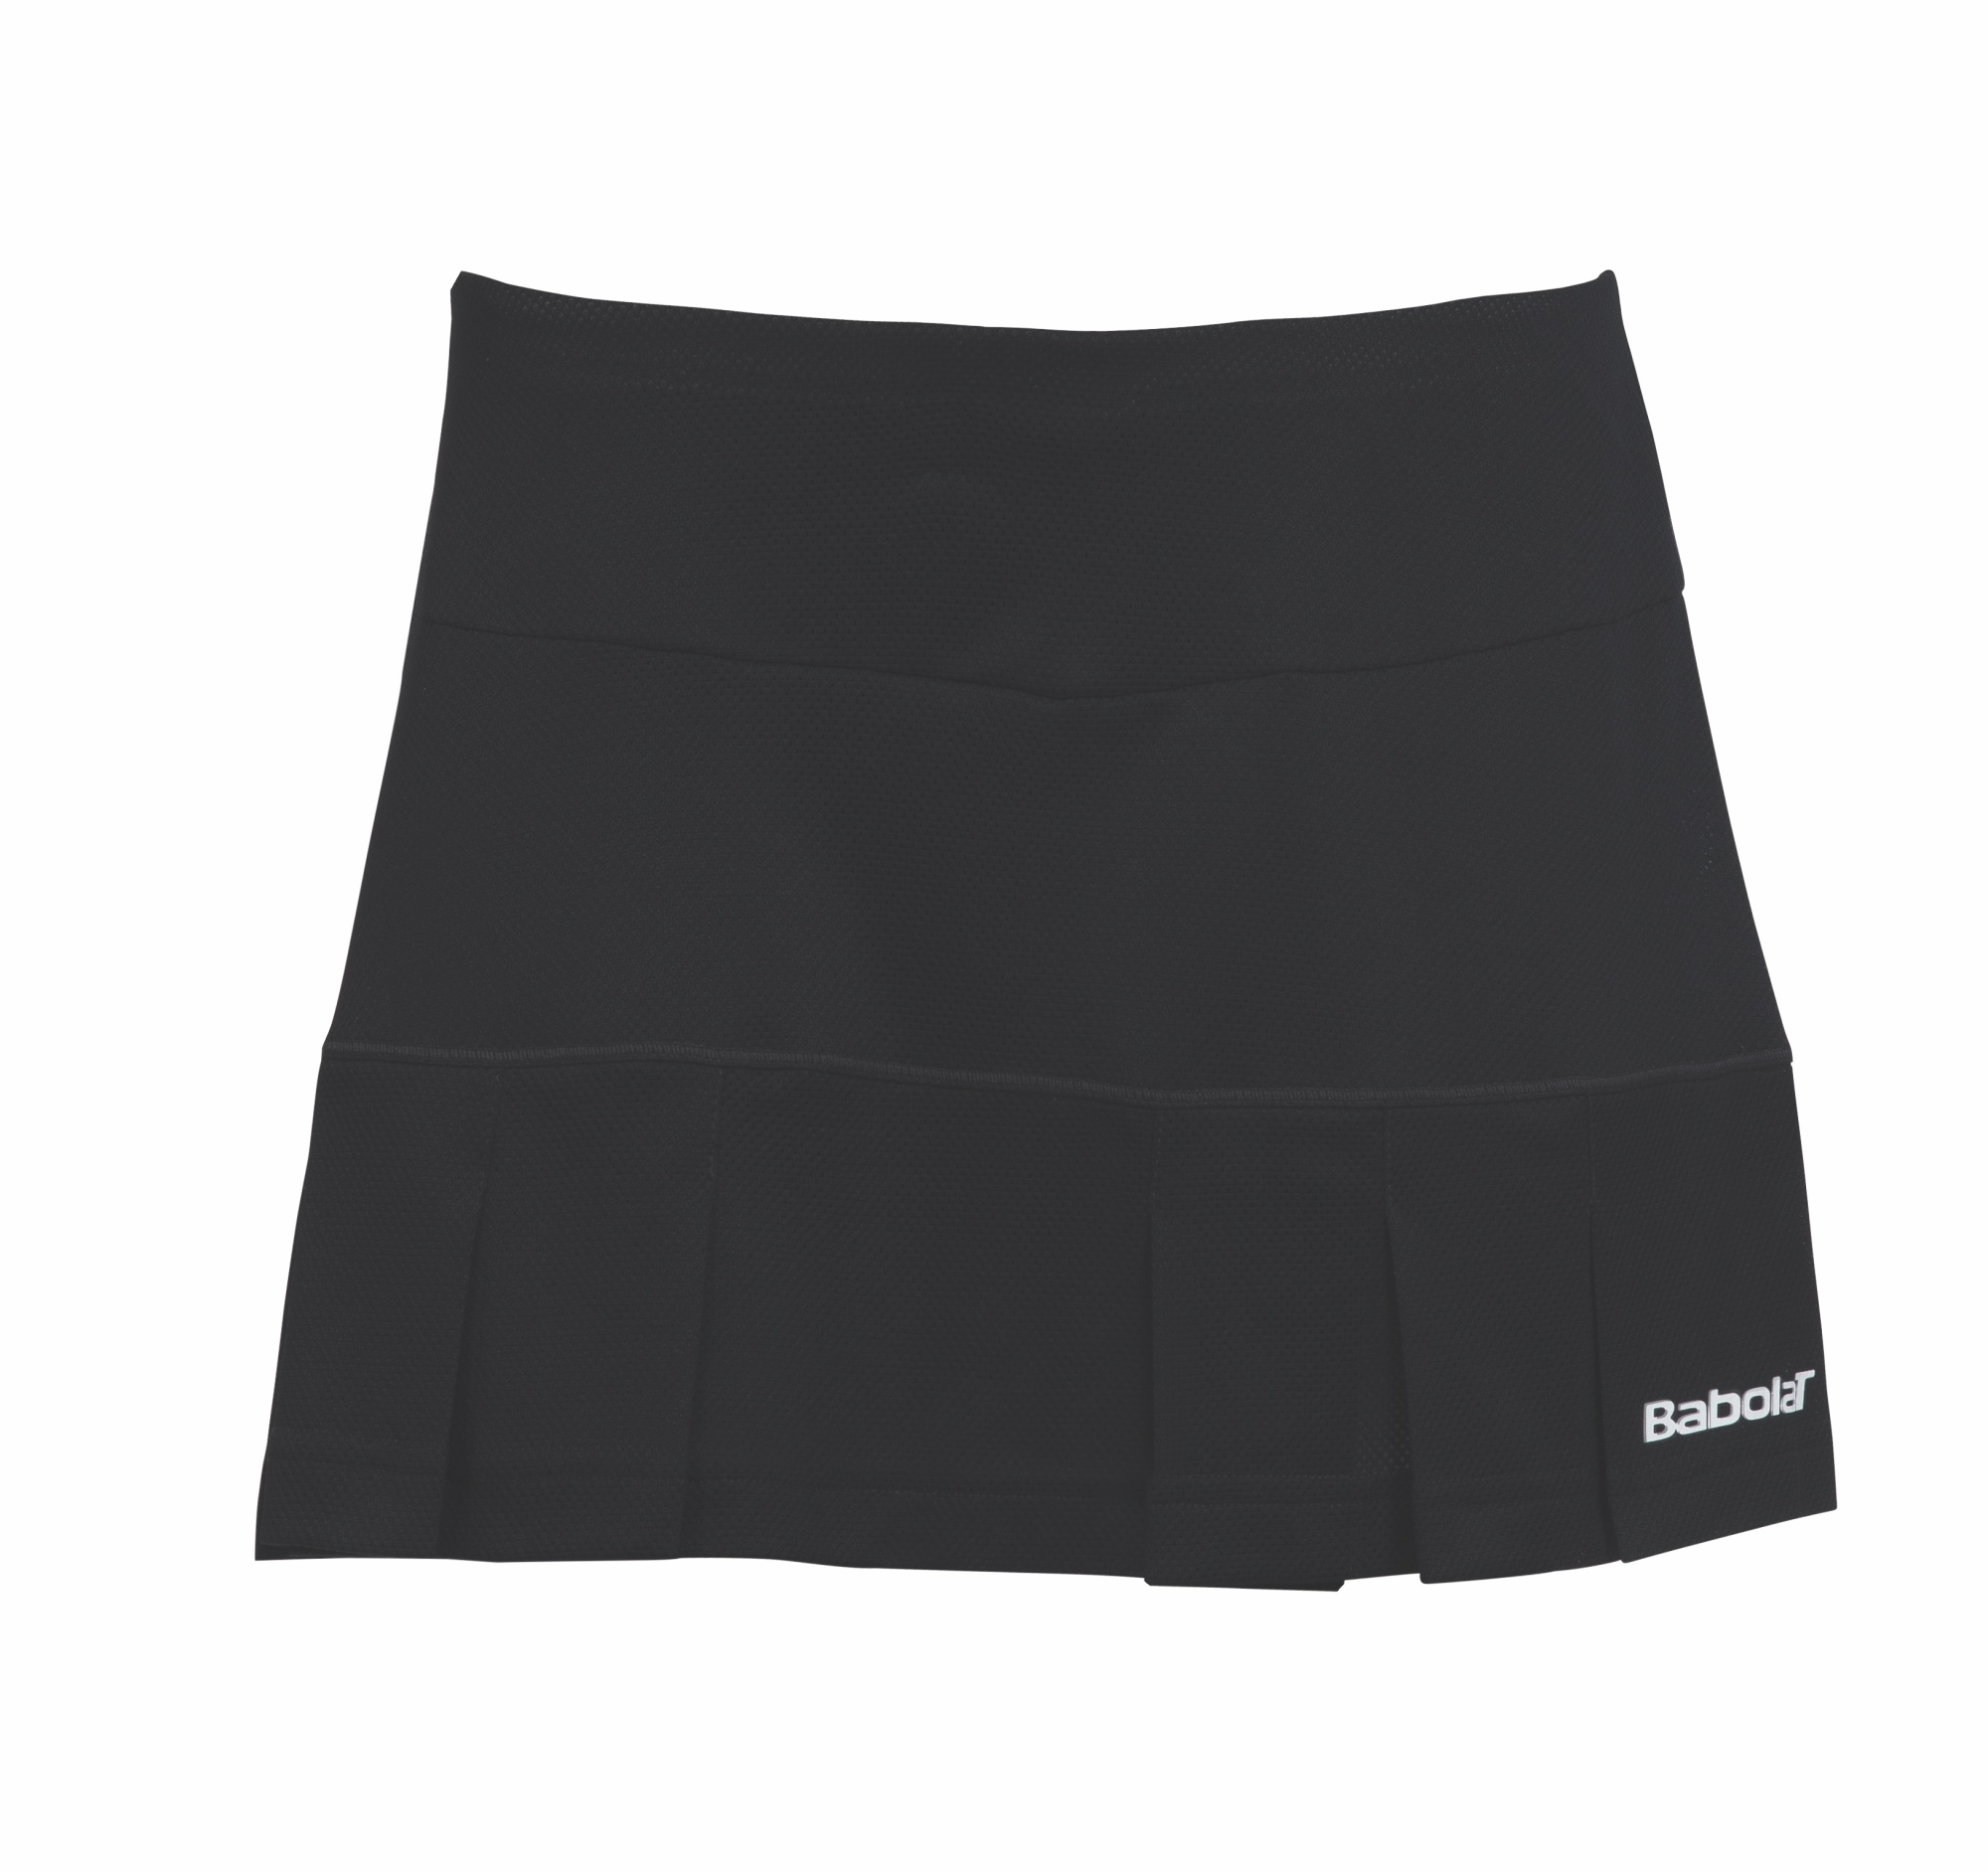 Babolat Skort Girl Match Performance Anthracite 2015 164